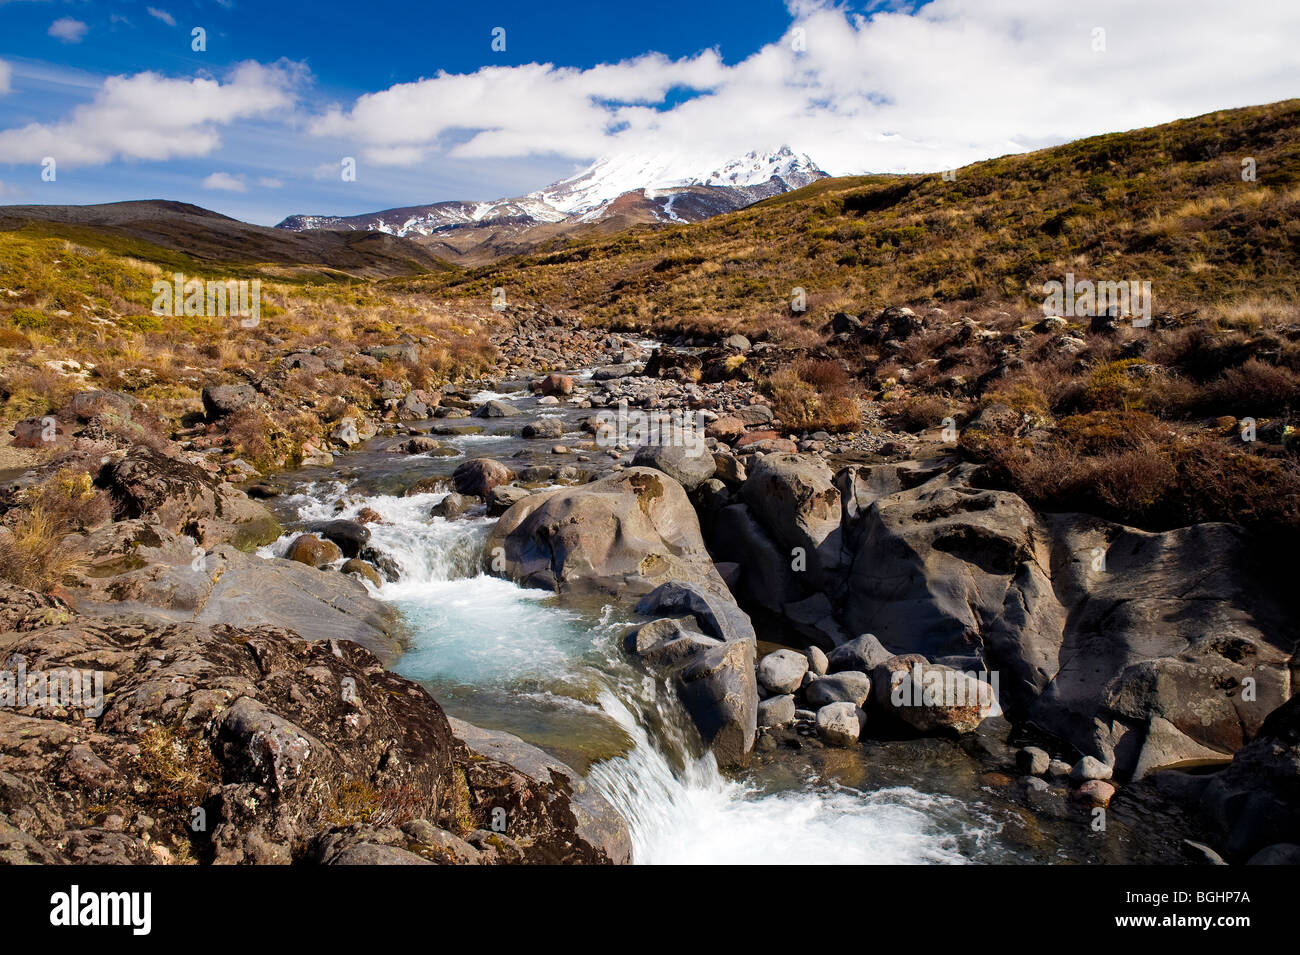 Mount Ruapehu, Tongariro National Park, North Island, New Zealand - Stock Image